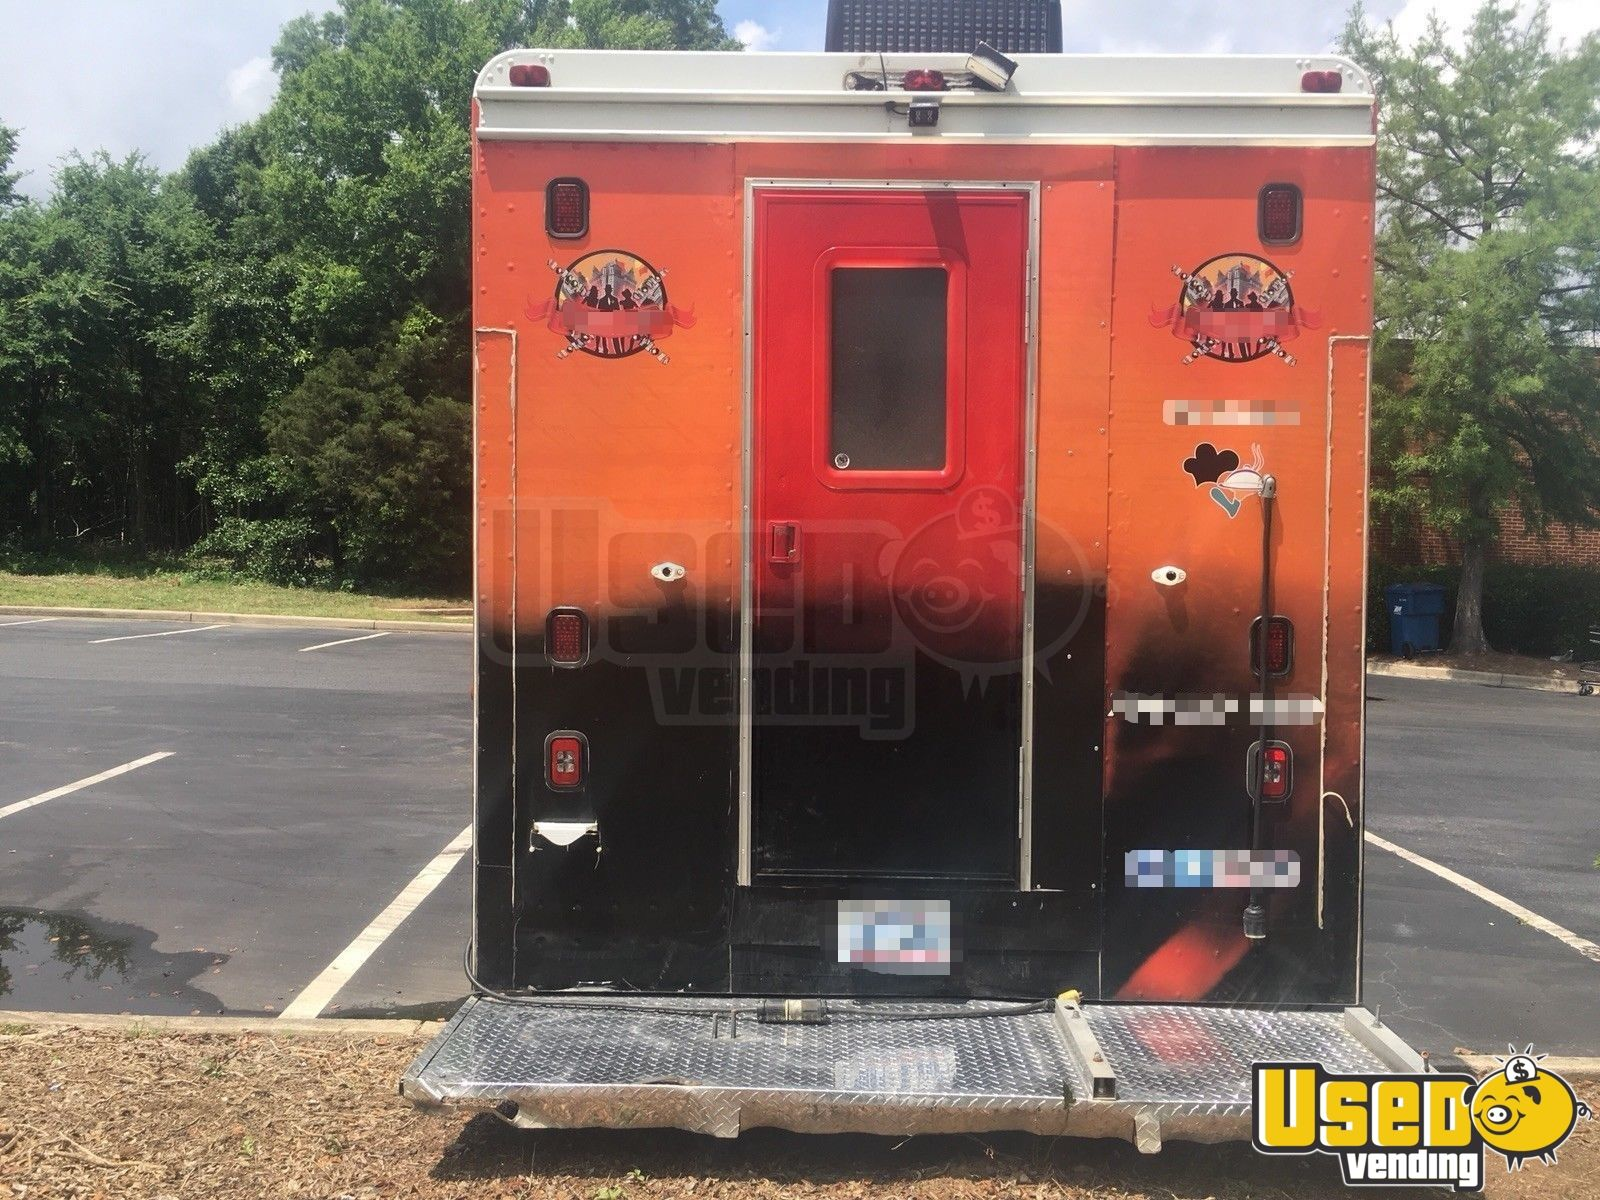 1999 Chevy Grumman All-purpose Food Truck Stainless Steel Wall Covers District Of Columbia Diesel Engine for Sale - 5